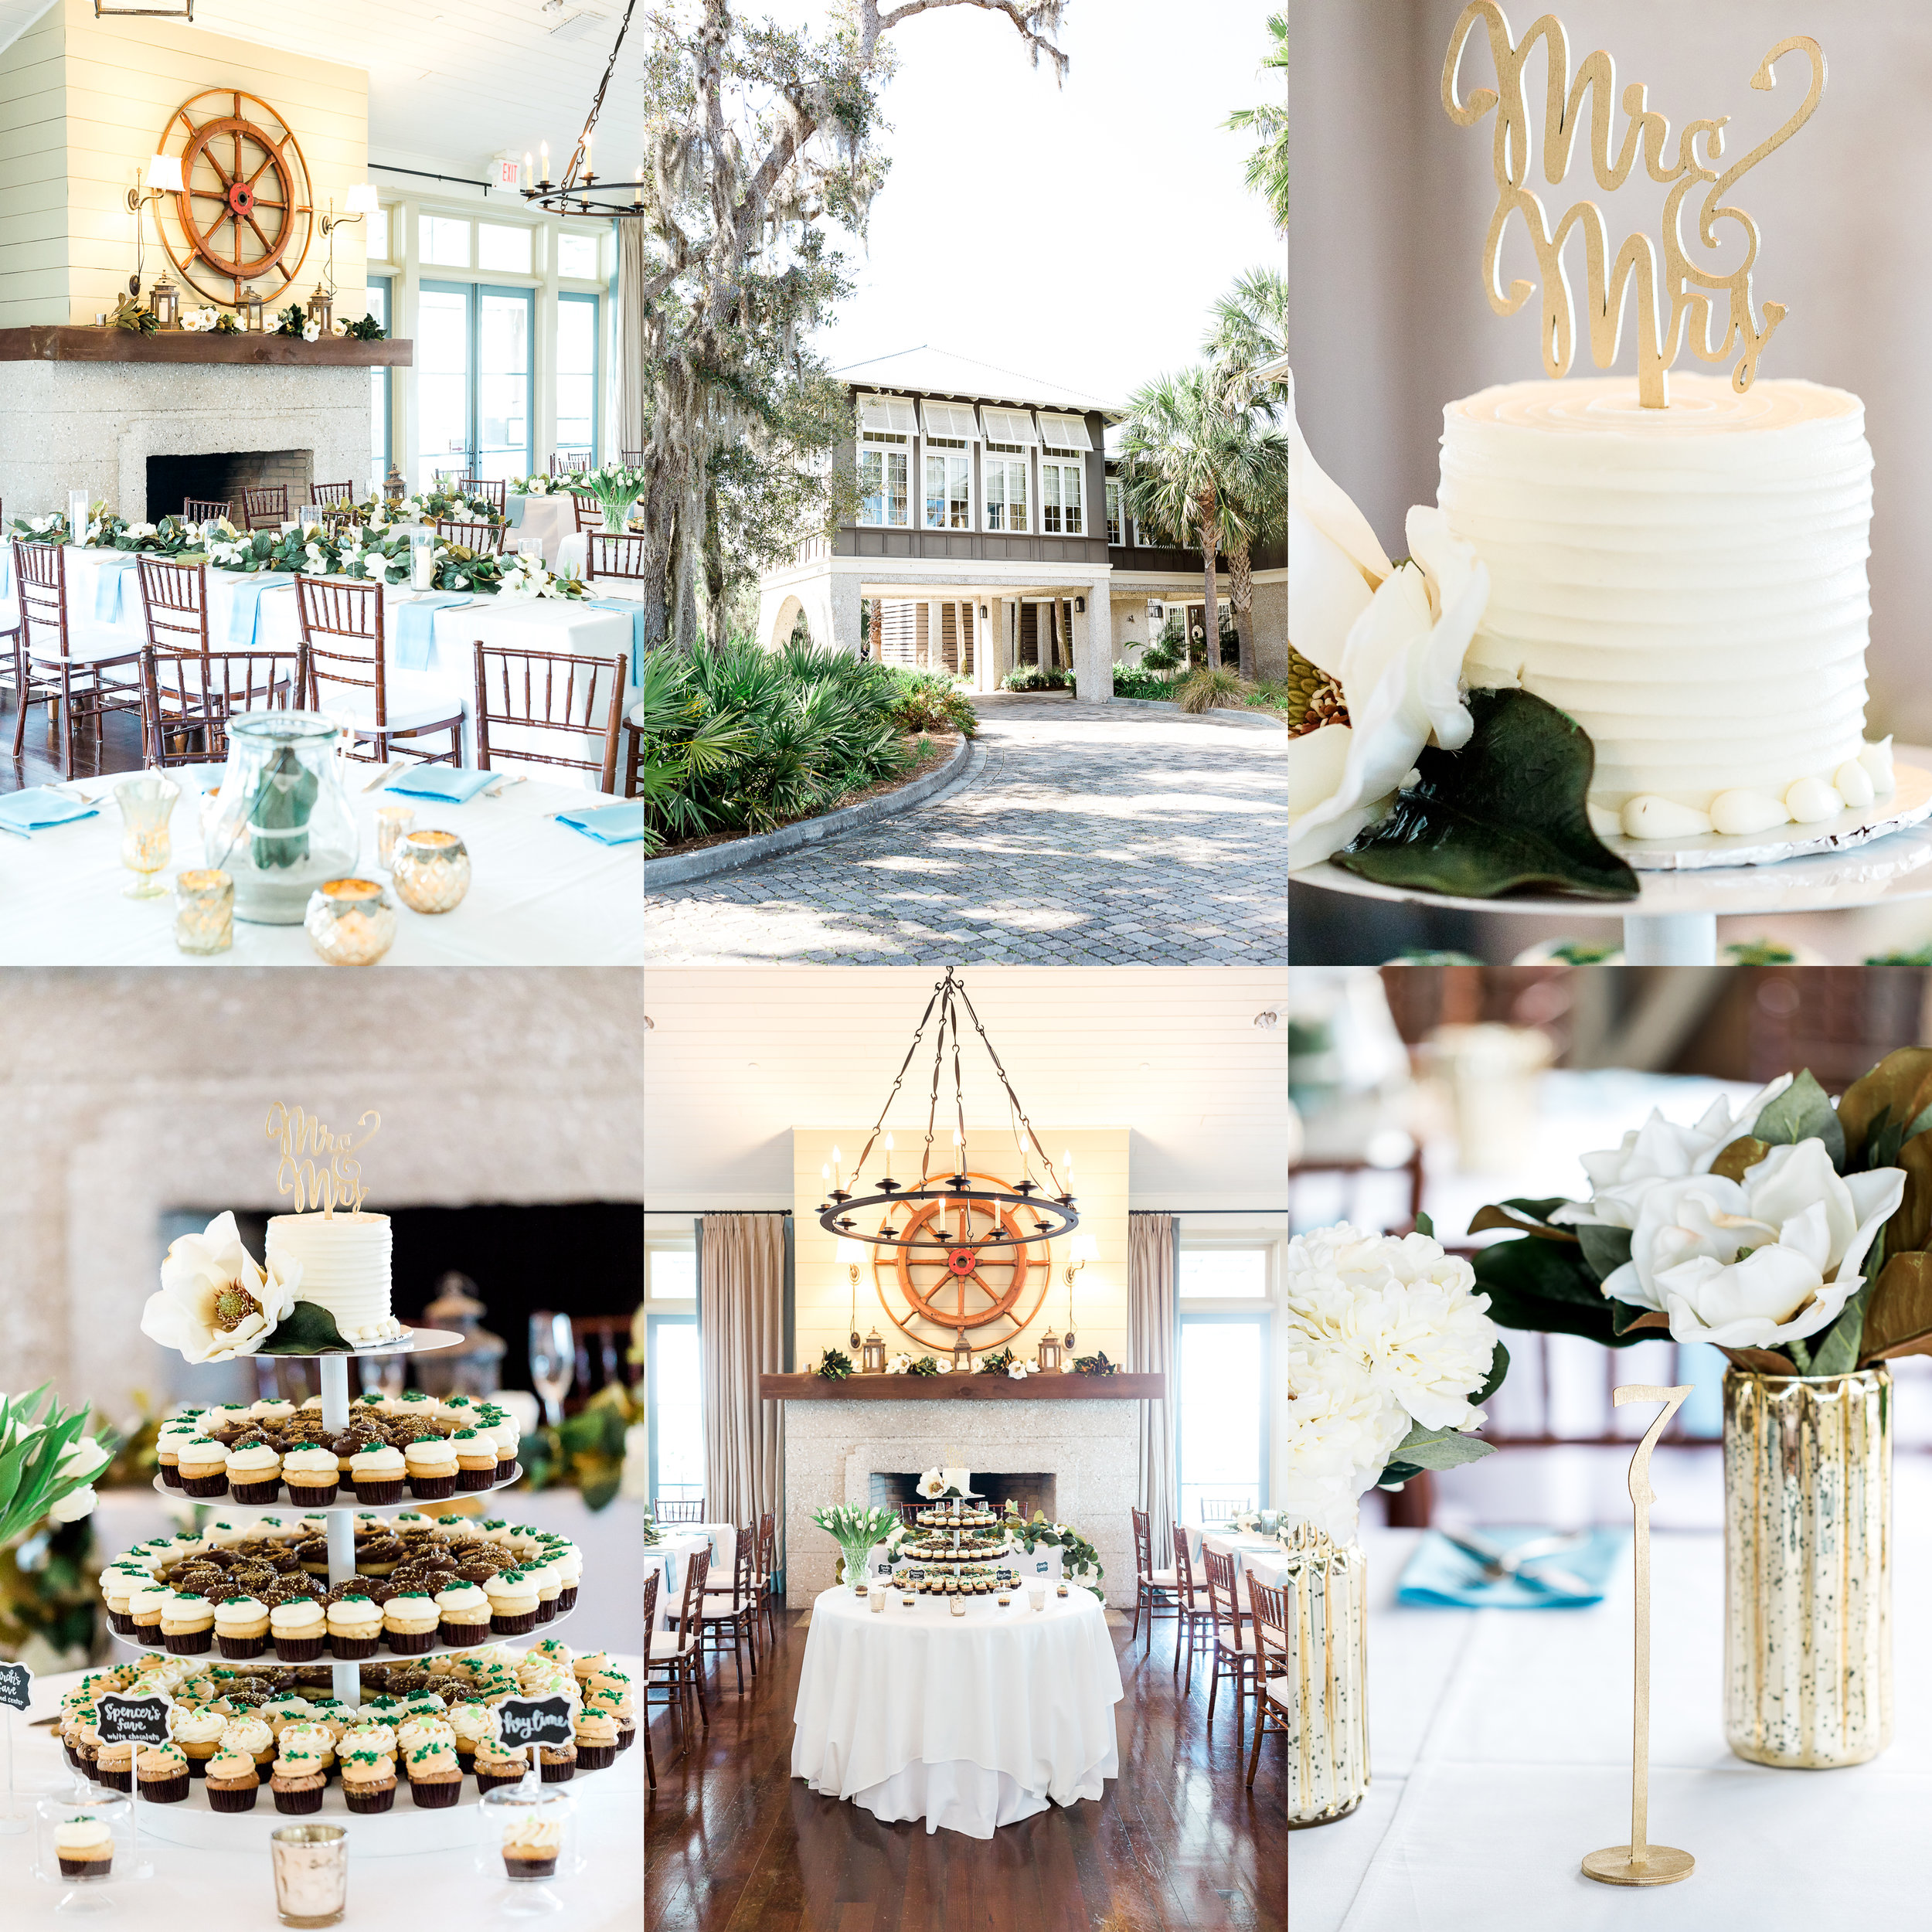 oyster bay yacht club wedding details and decor ideas_fernandina beach wedding